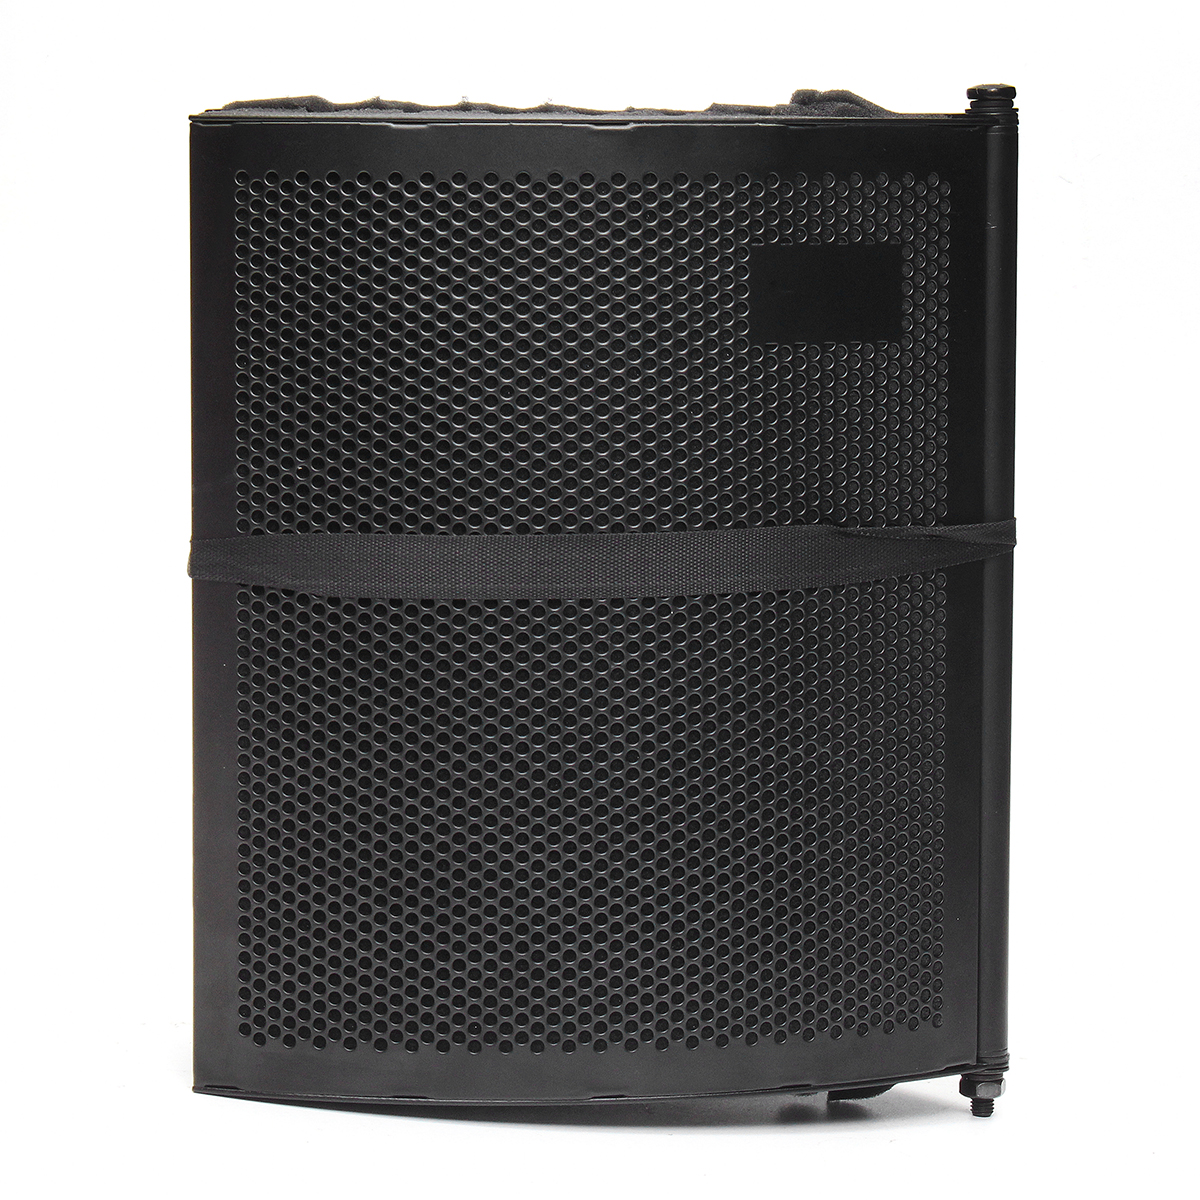 Foldable Adjustable Portable Sound Absorbing Shield Vocal Recording Panel Soundproof Foam